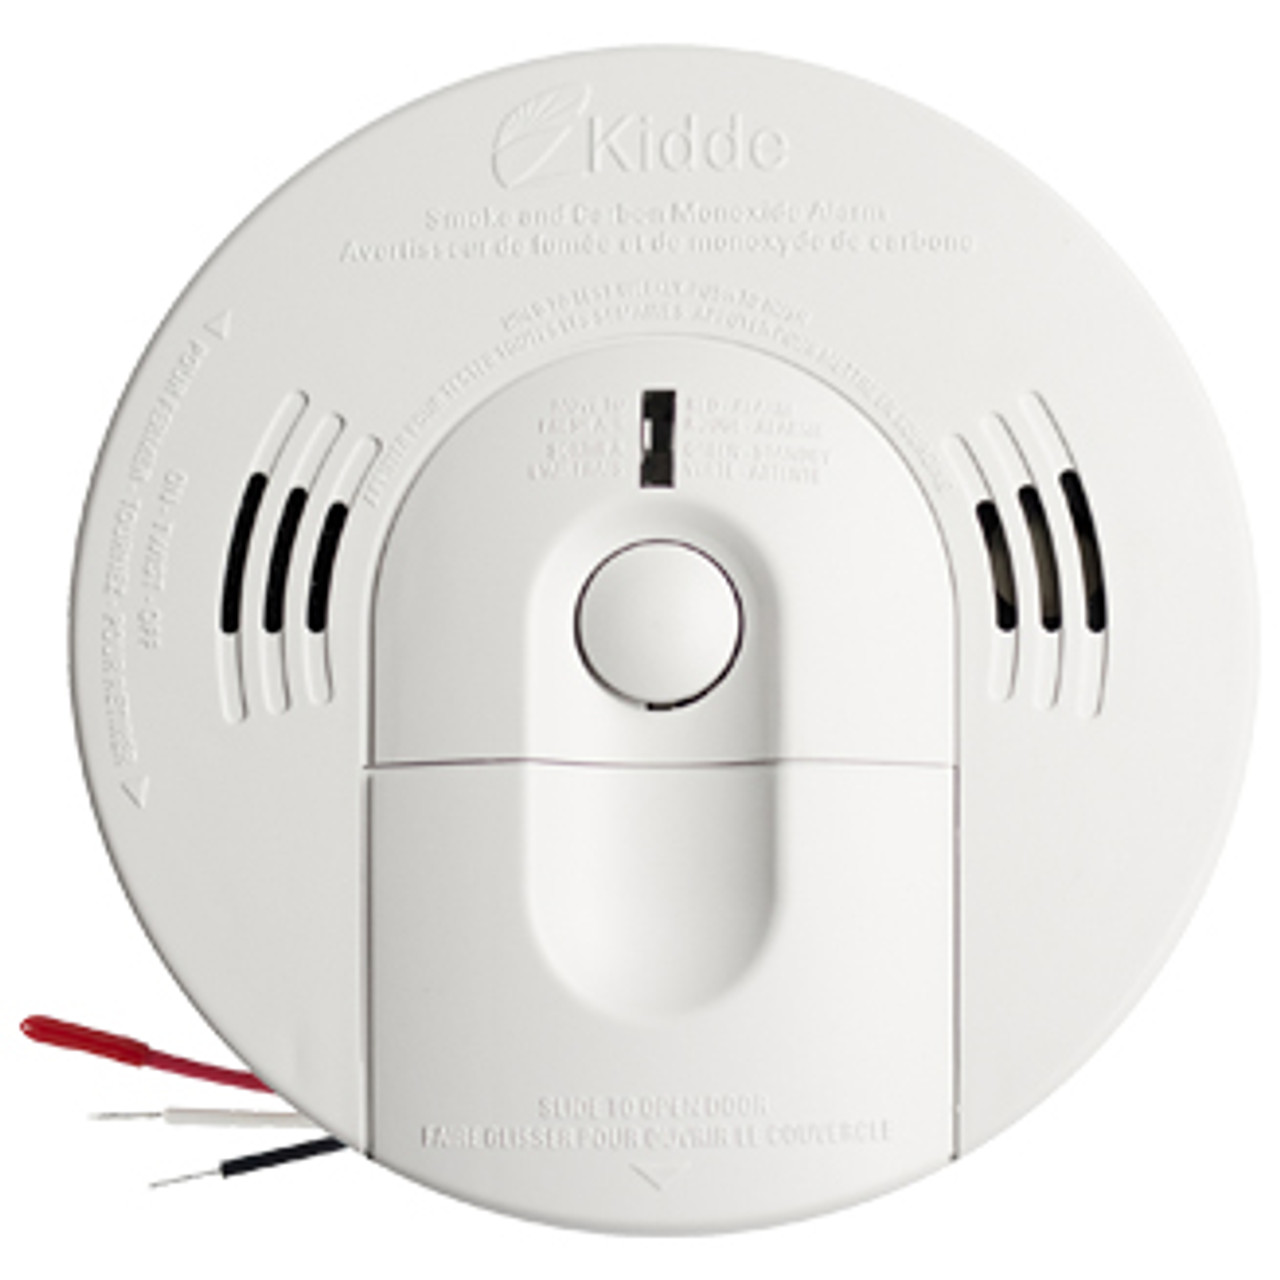 Kidde Direct Wire 120v Talking Smoke And Co Detector With Battery